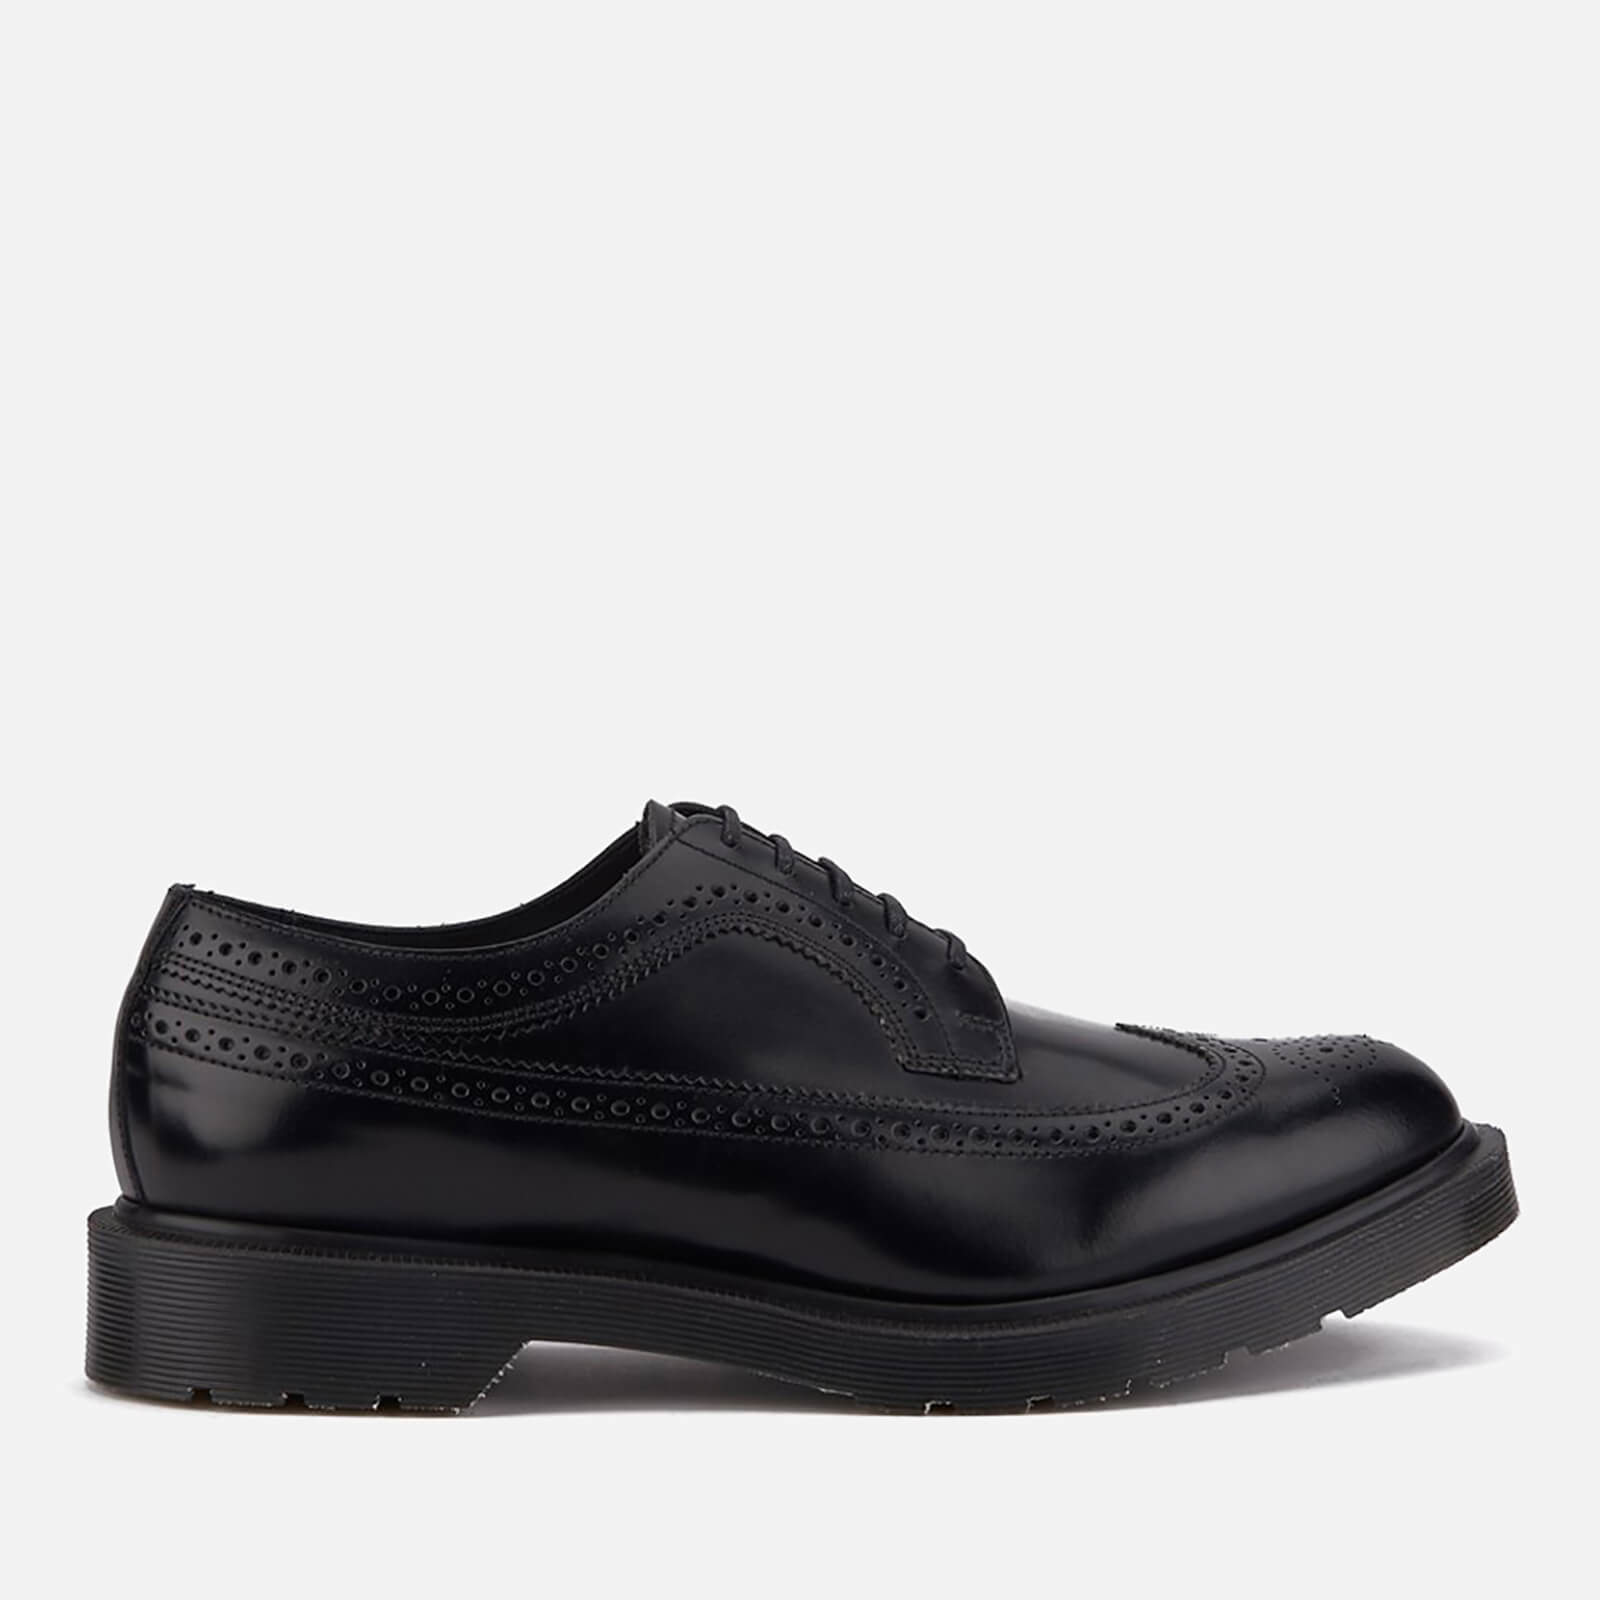 ebb0500fcd414 ... Dr. Martens Men's 'Made in England' 3989 Leather Brogues - Black Boanil  Brush